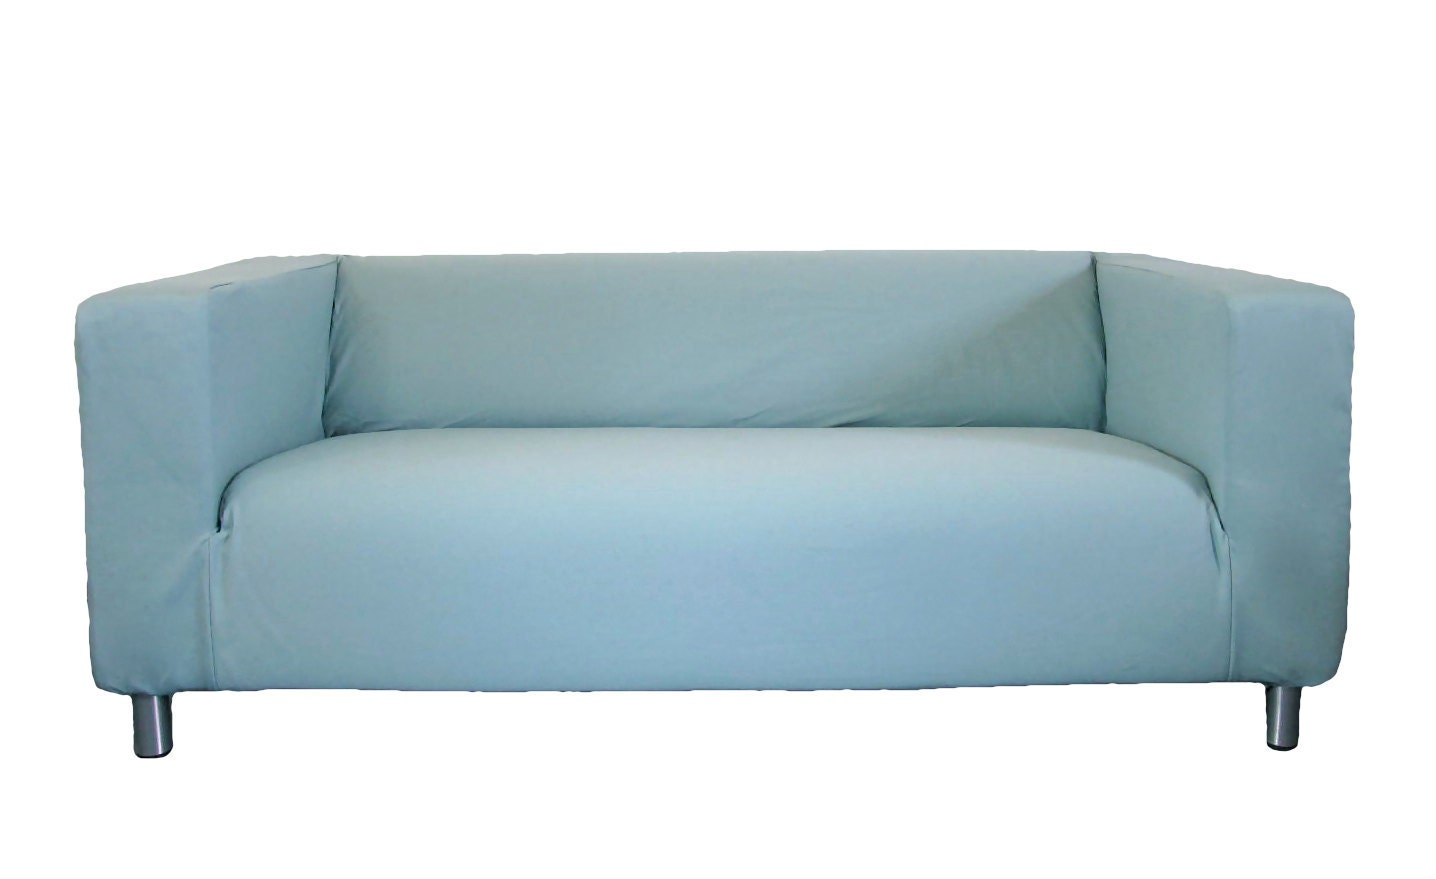 Unavailable listing on etsy Klippan loveseat covers